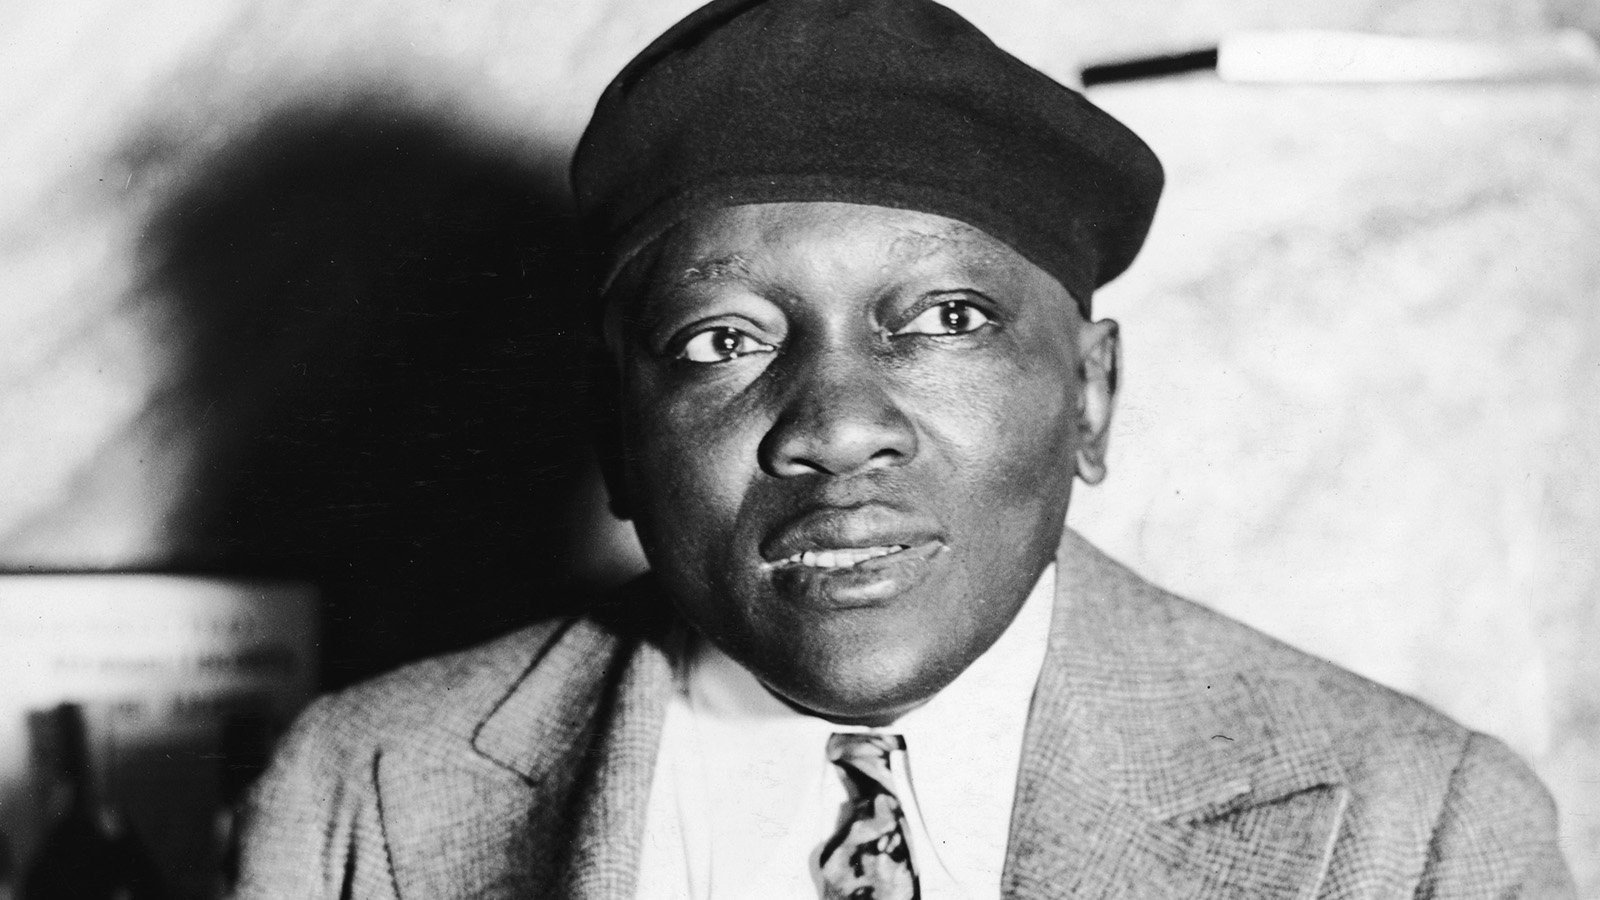 Portrait of American boxer, heavyweight champion and inventor Jack Johnson (1878 - 1946) smoking a cigar, circa 1930s. (Source: LASS/Hulton Archives/Getty Image)